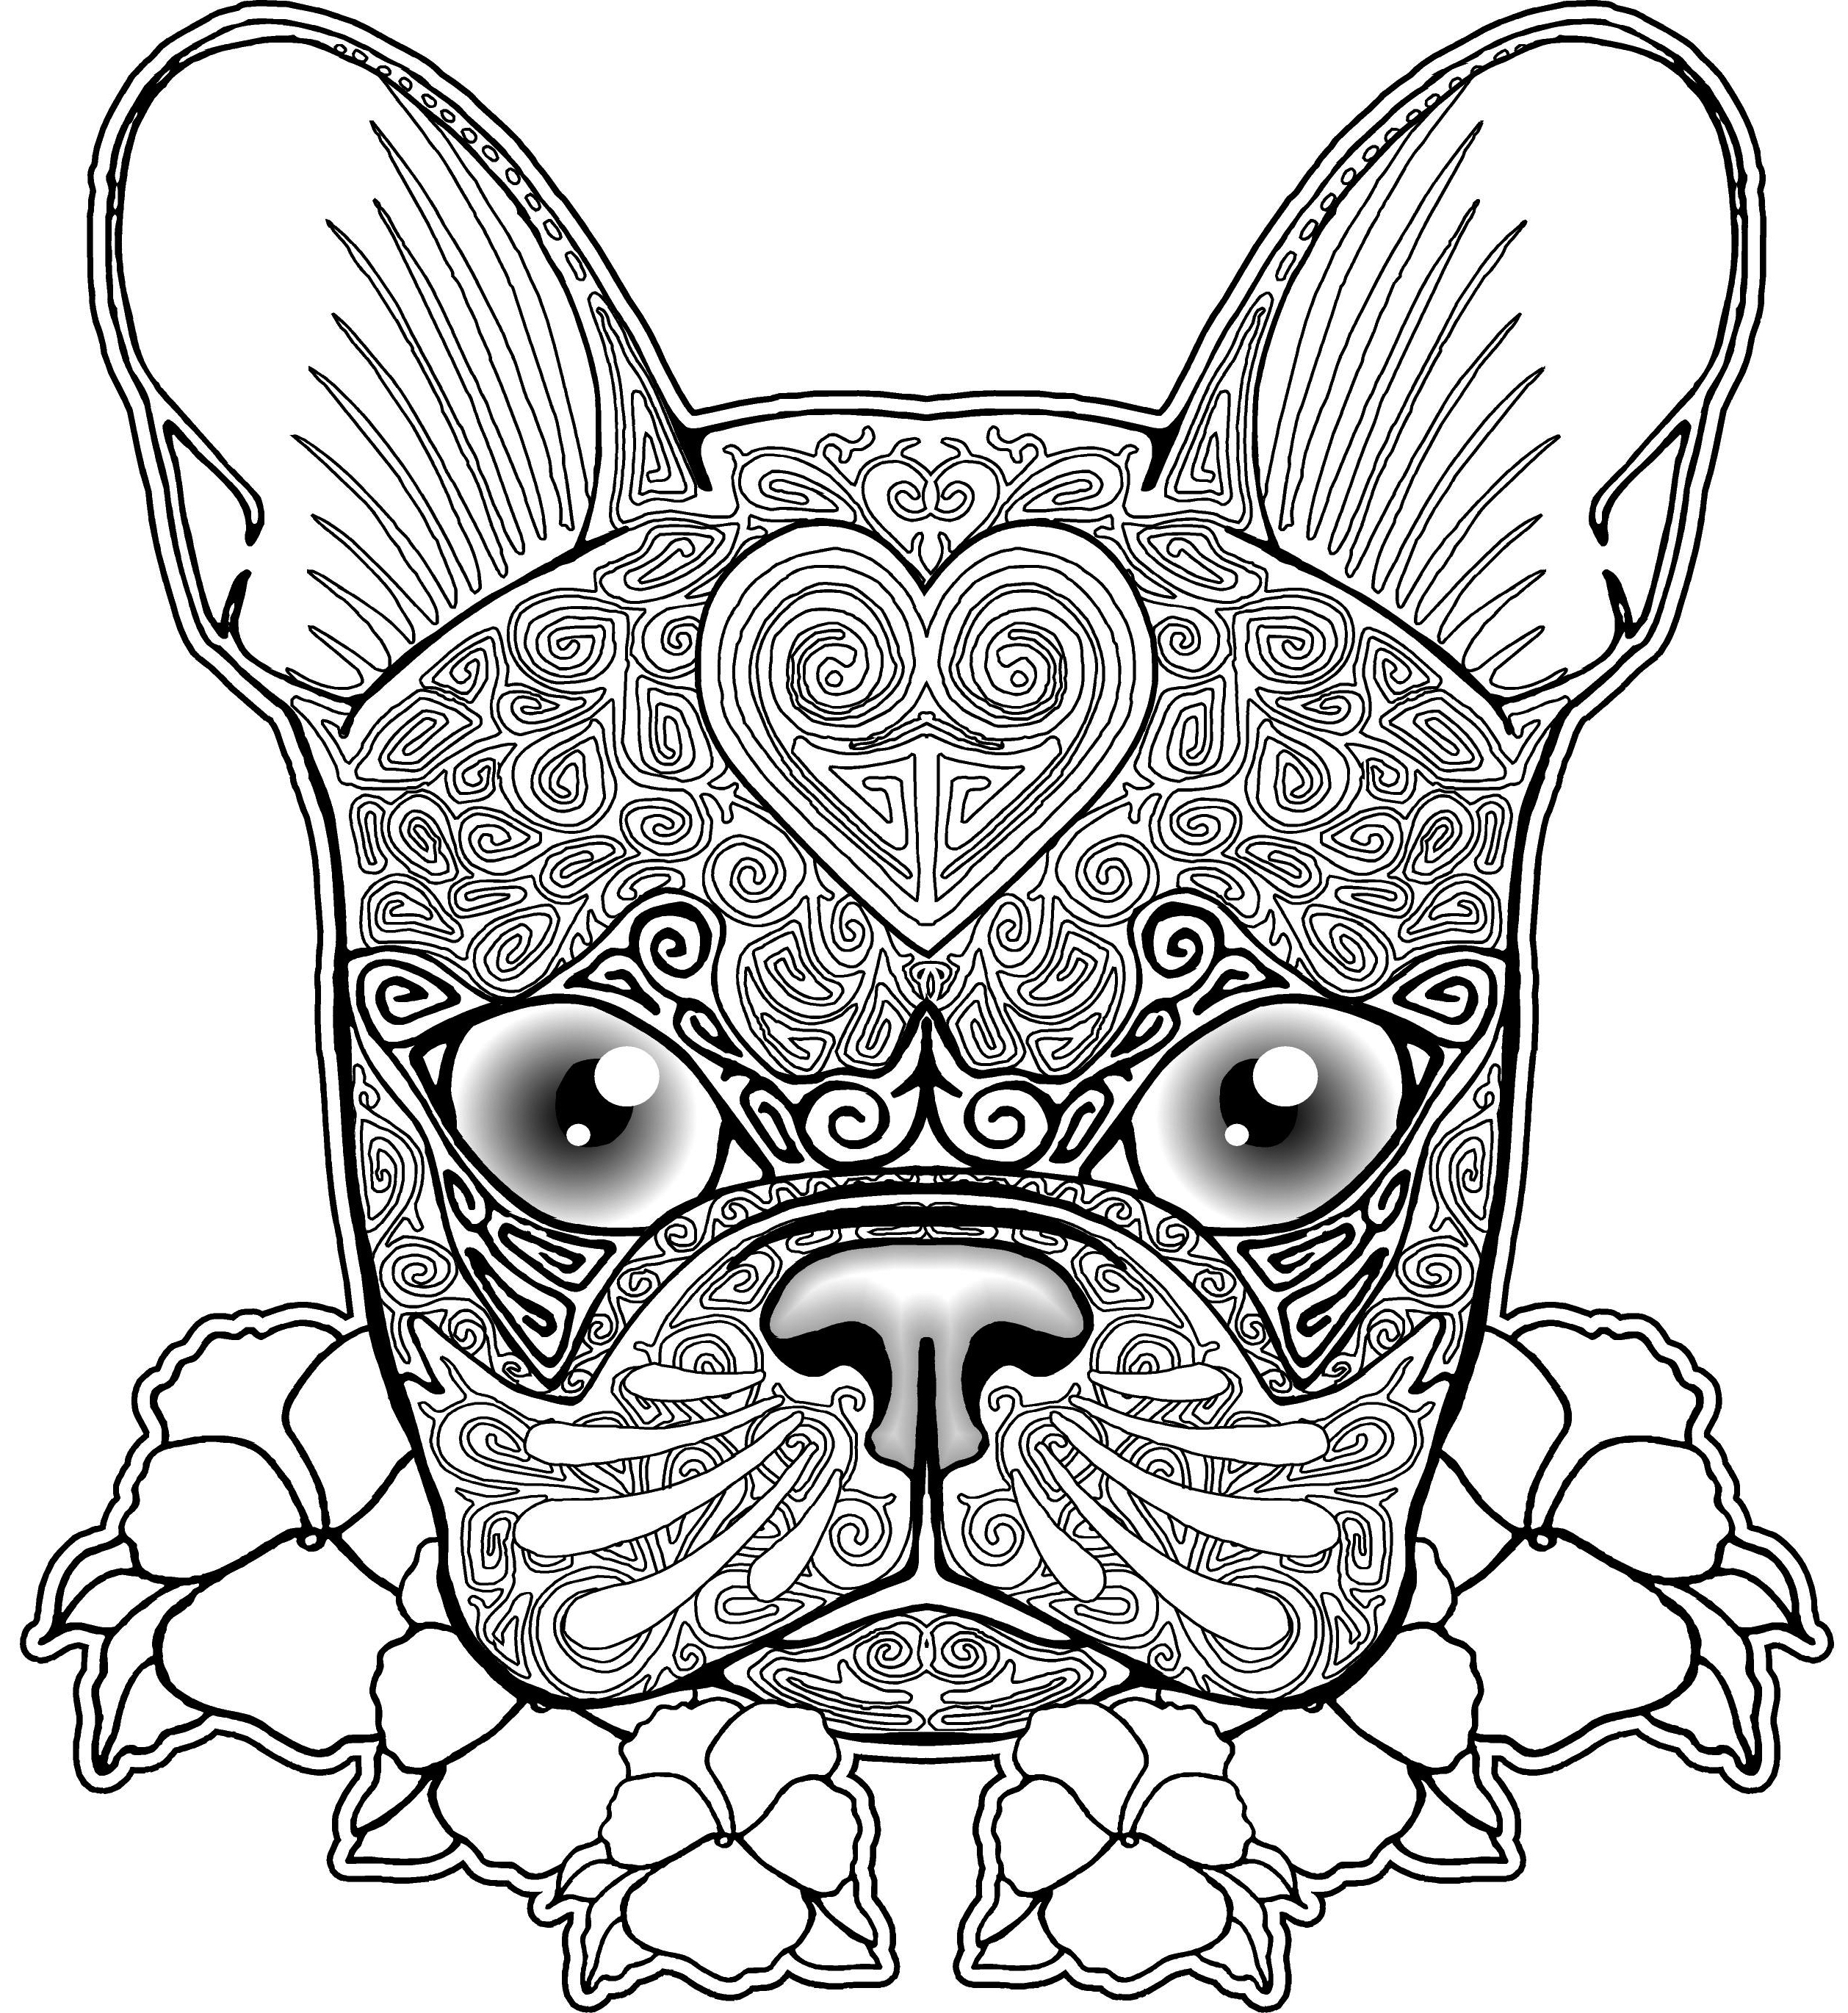 Bulldog Coloring Pages Printable  Gallery 15h - Free Download